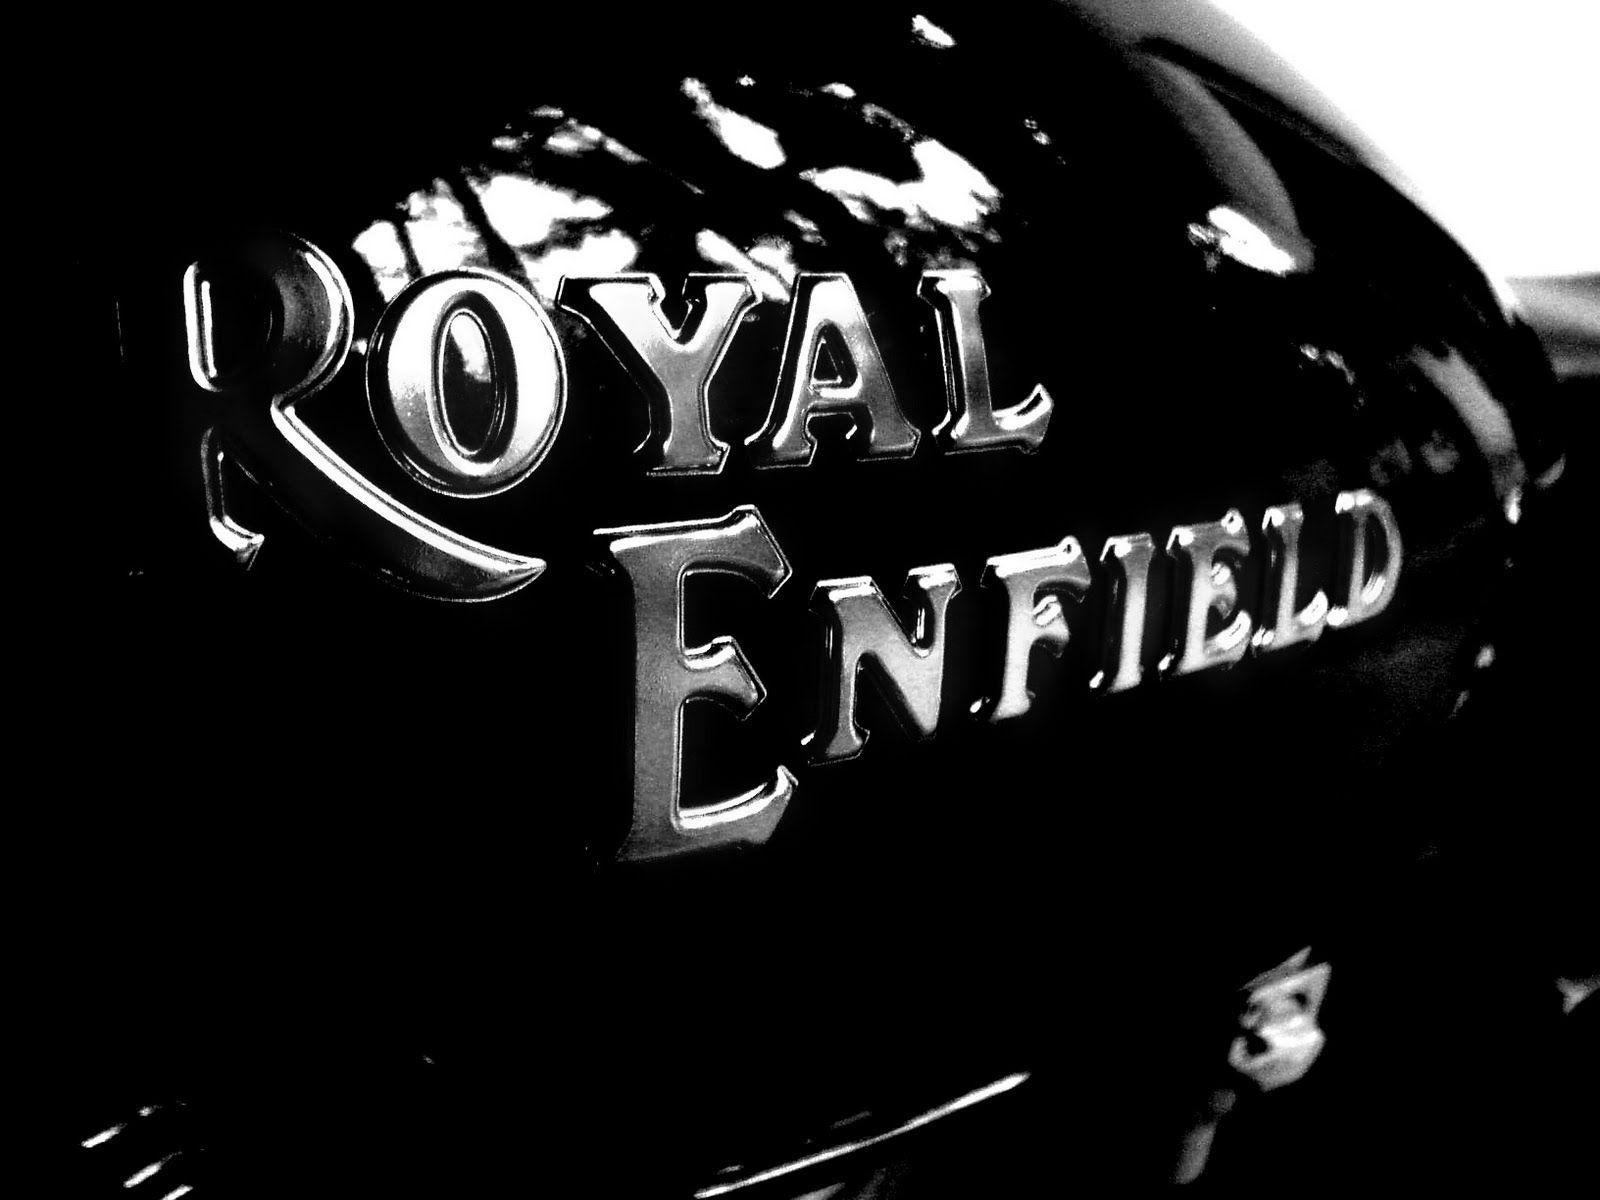 Hd wallpaper royal enfield - Royal Enfield Hd Wallpapers Hd Widescreen Wallpapers High